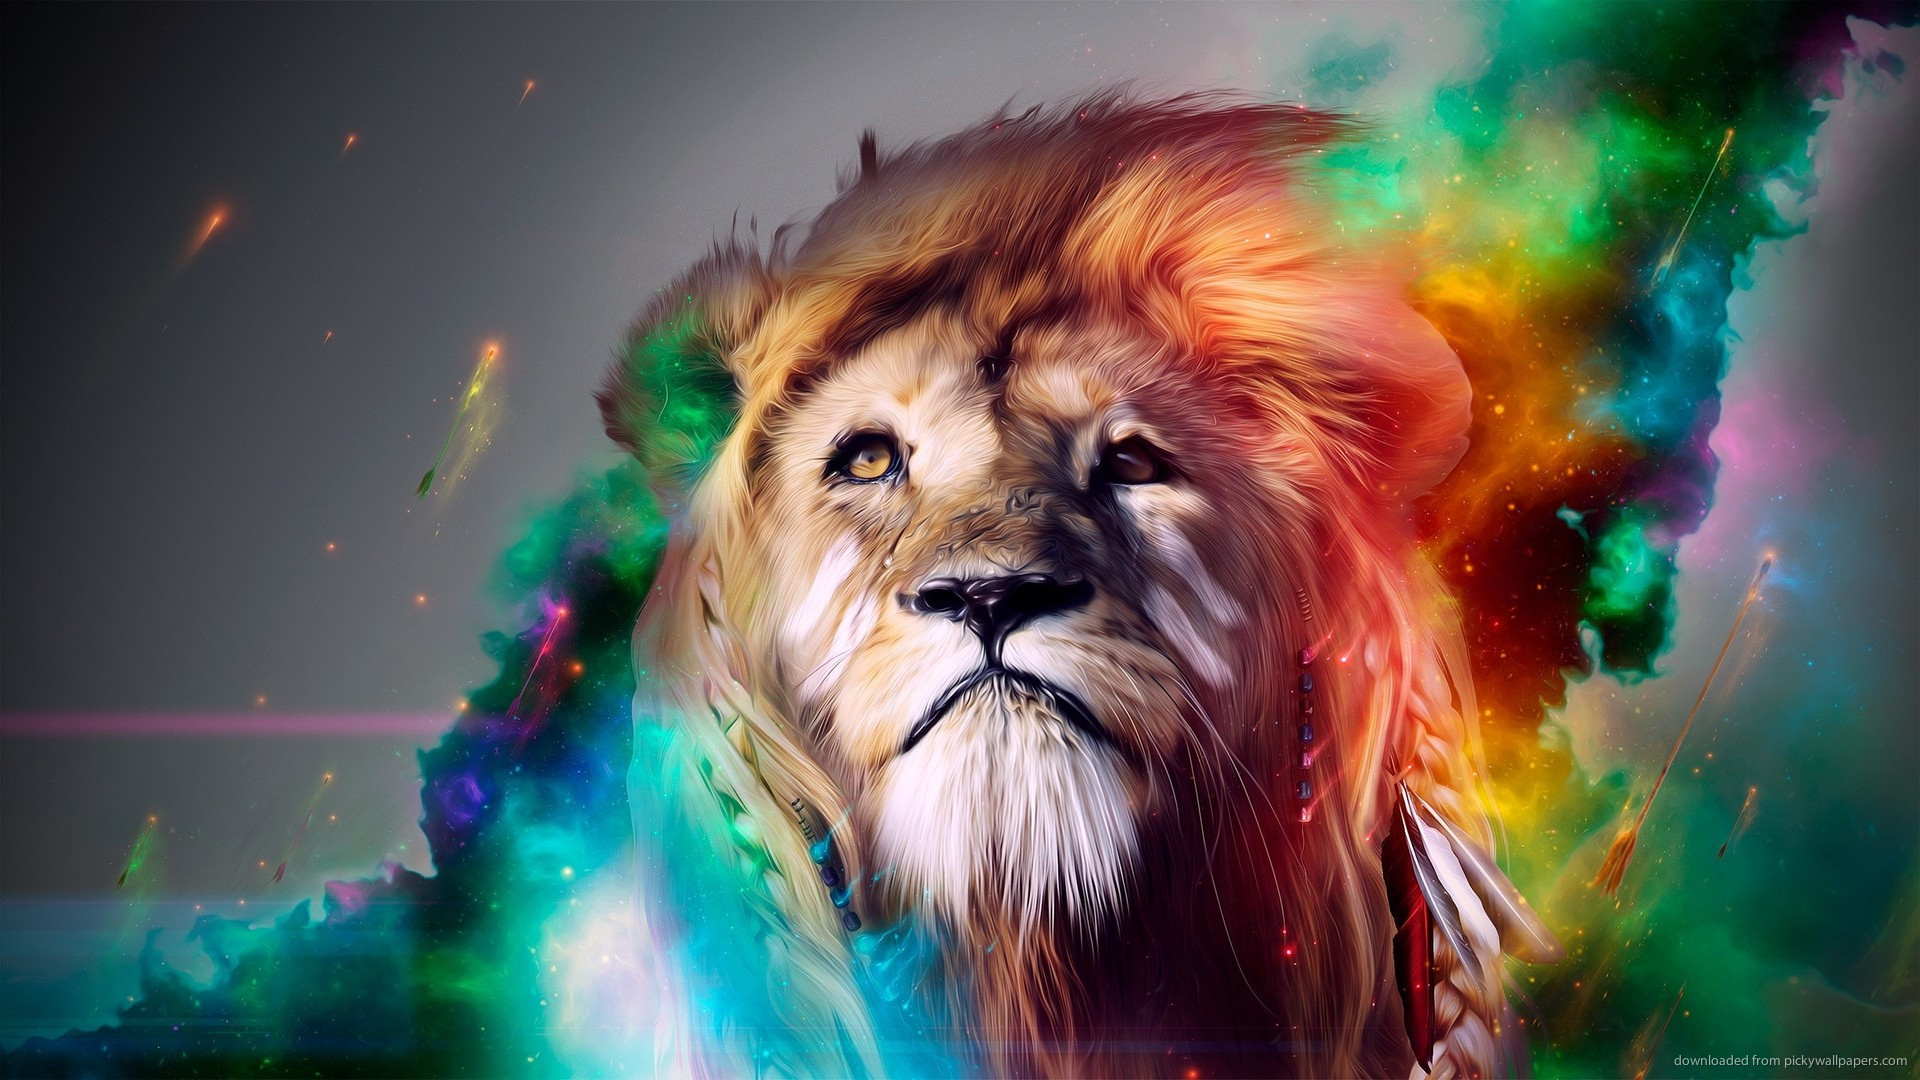 Blackberry iPad Colorful Lion Art Screensaver For Kindle3 And DX 1920x1080